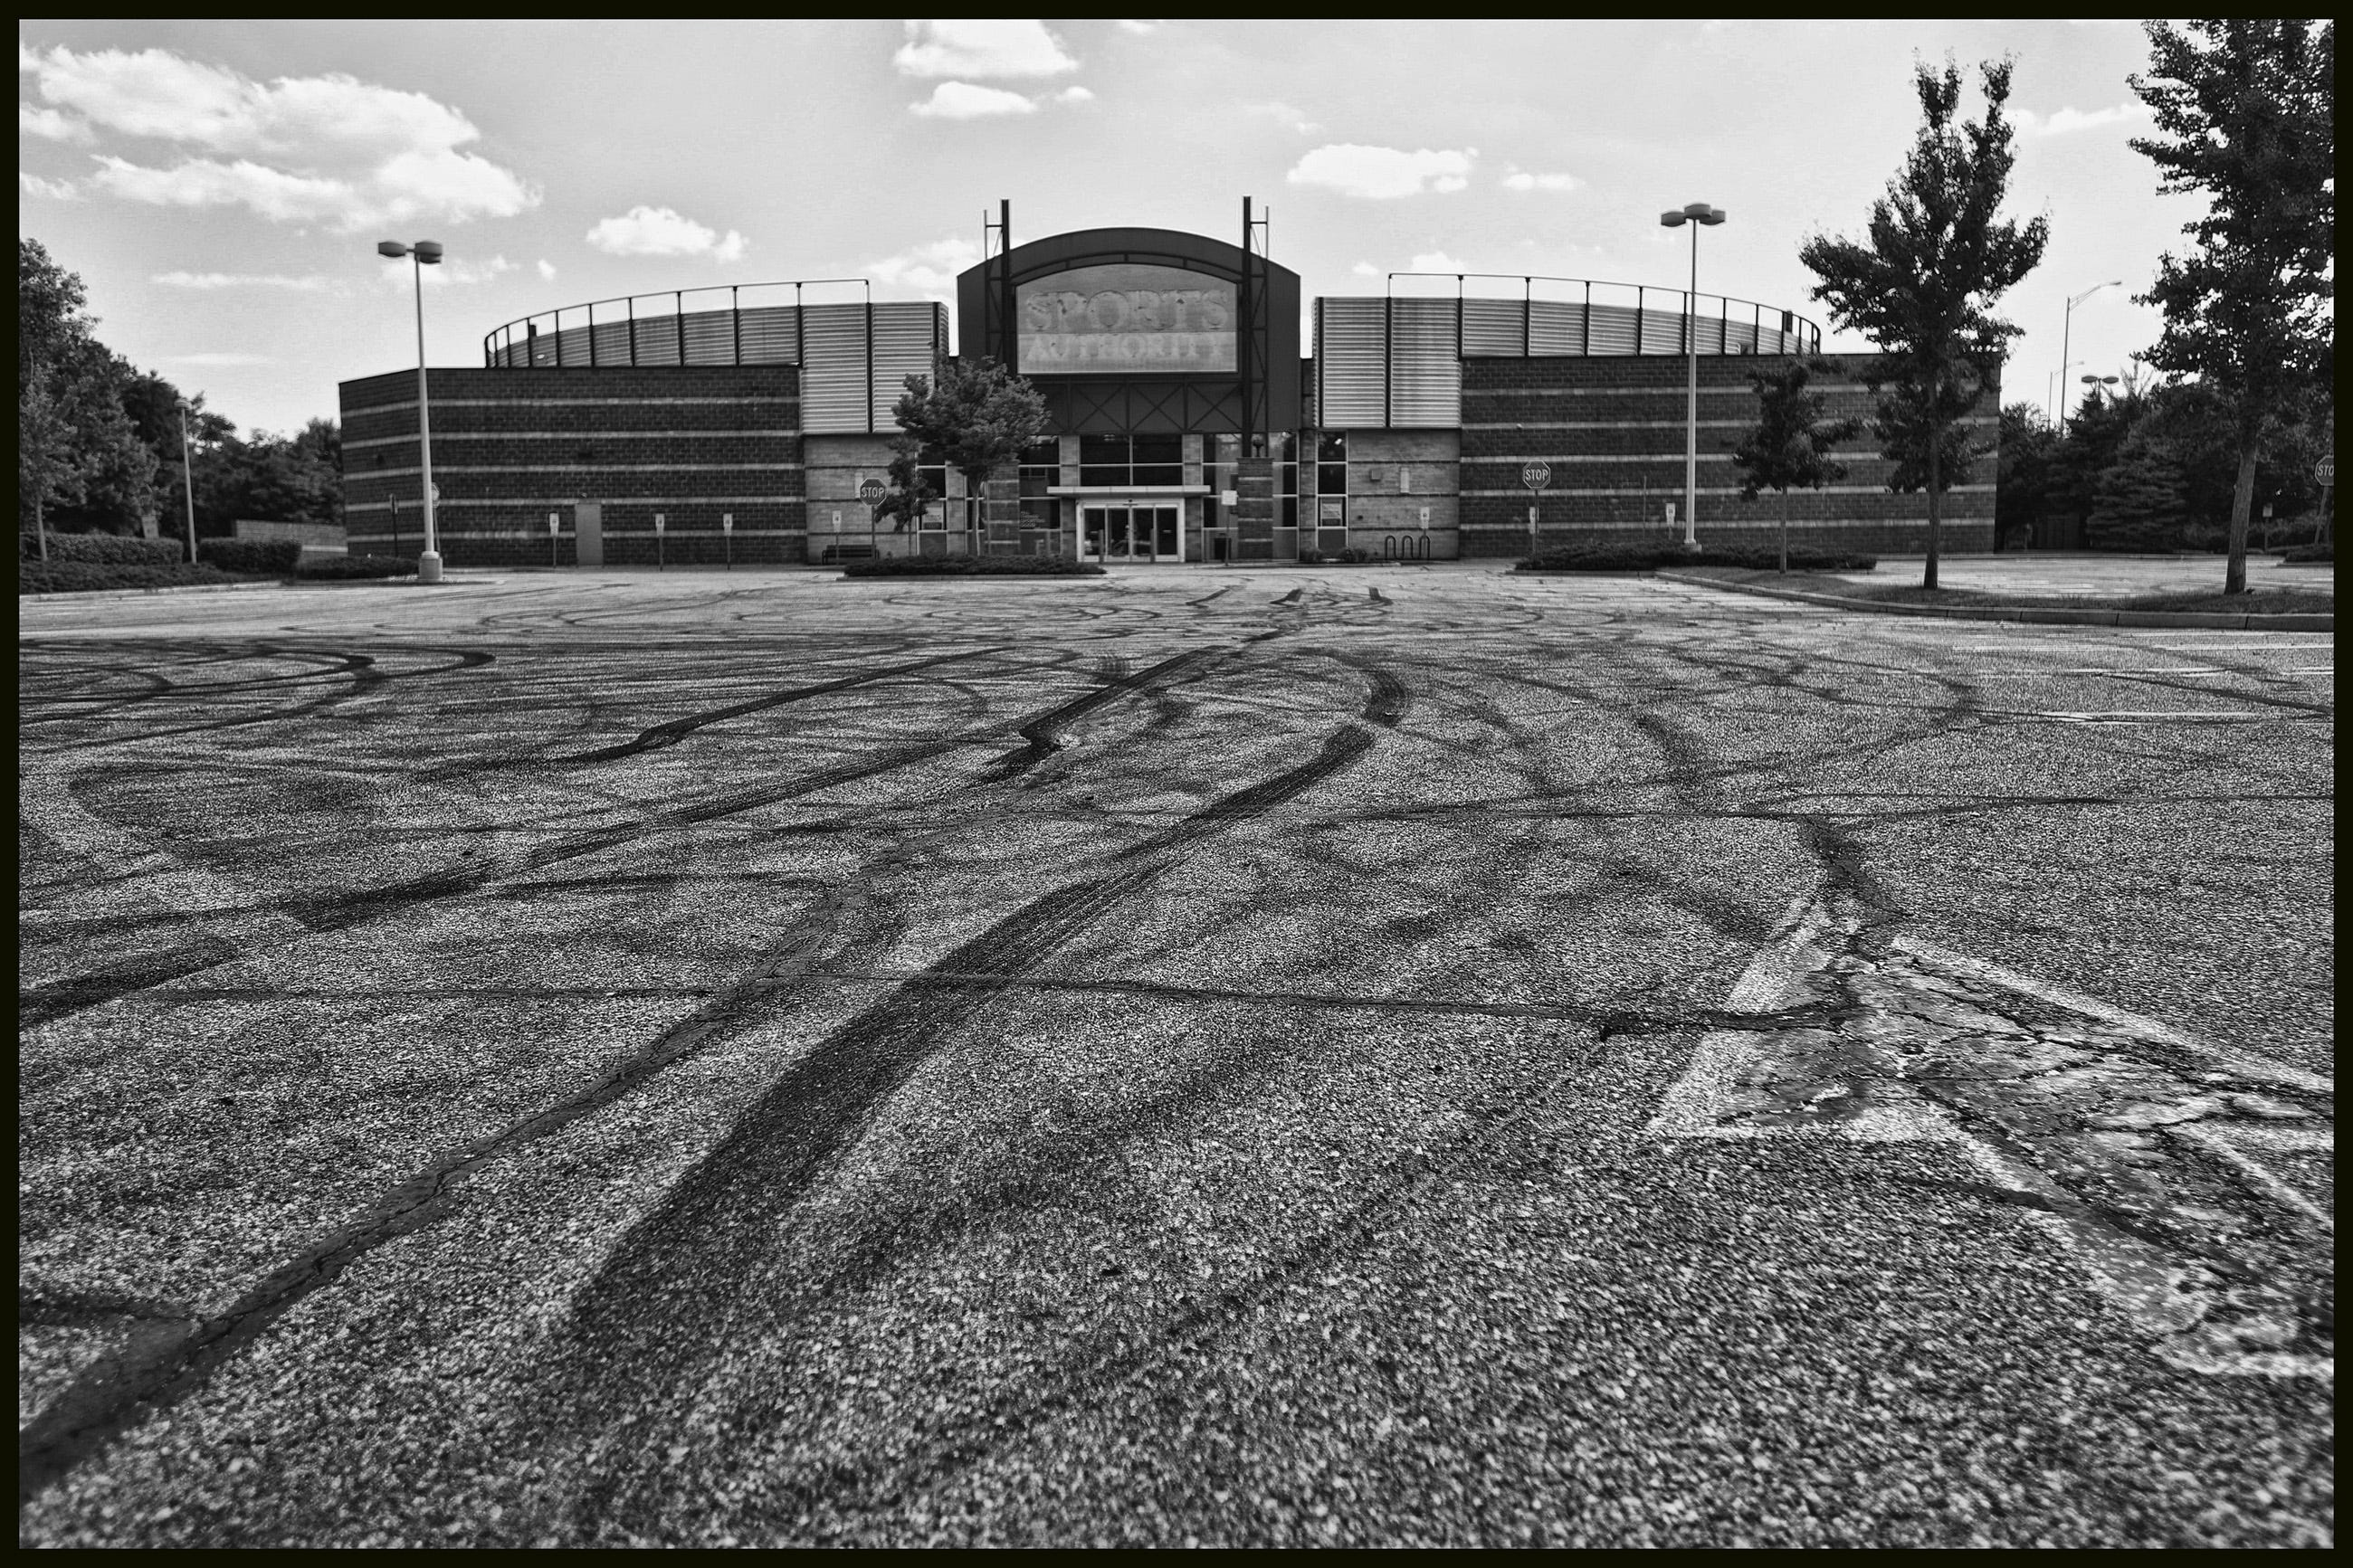 Traces of skid tires are seen on the front parking lot of the long time closed store Sport Authority in Paramus .